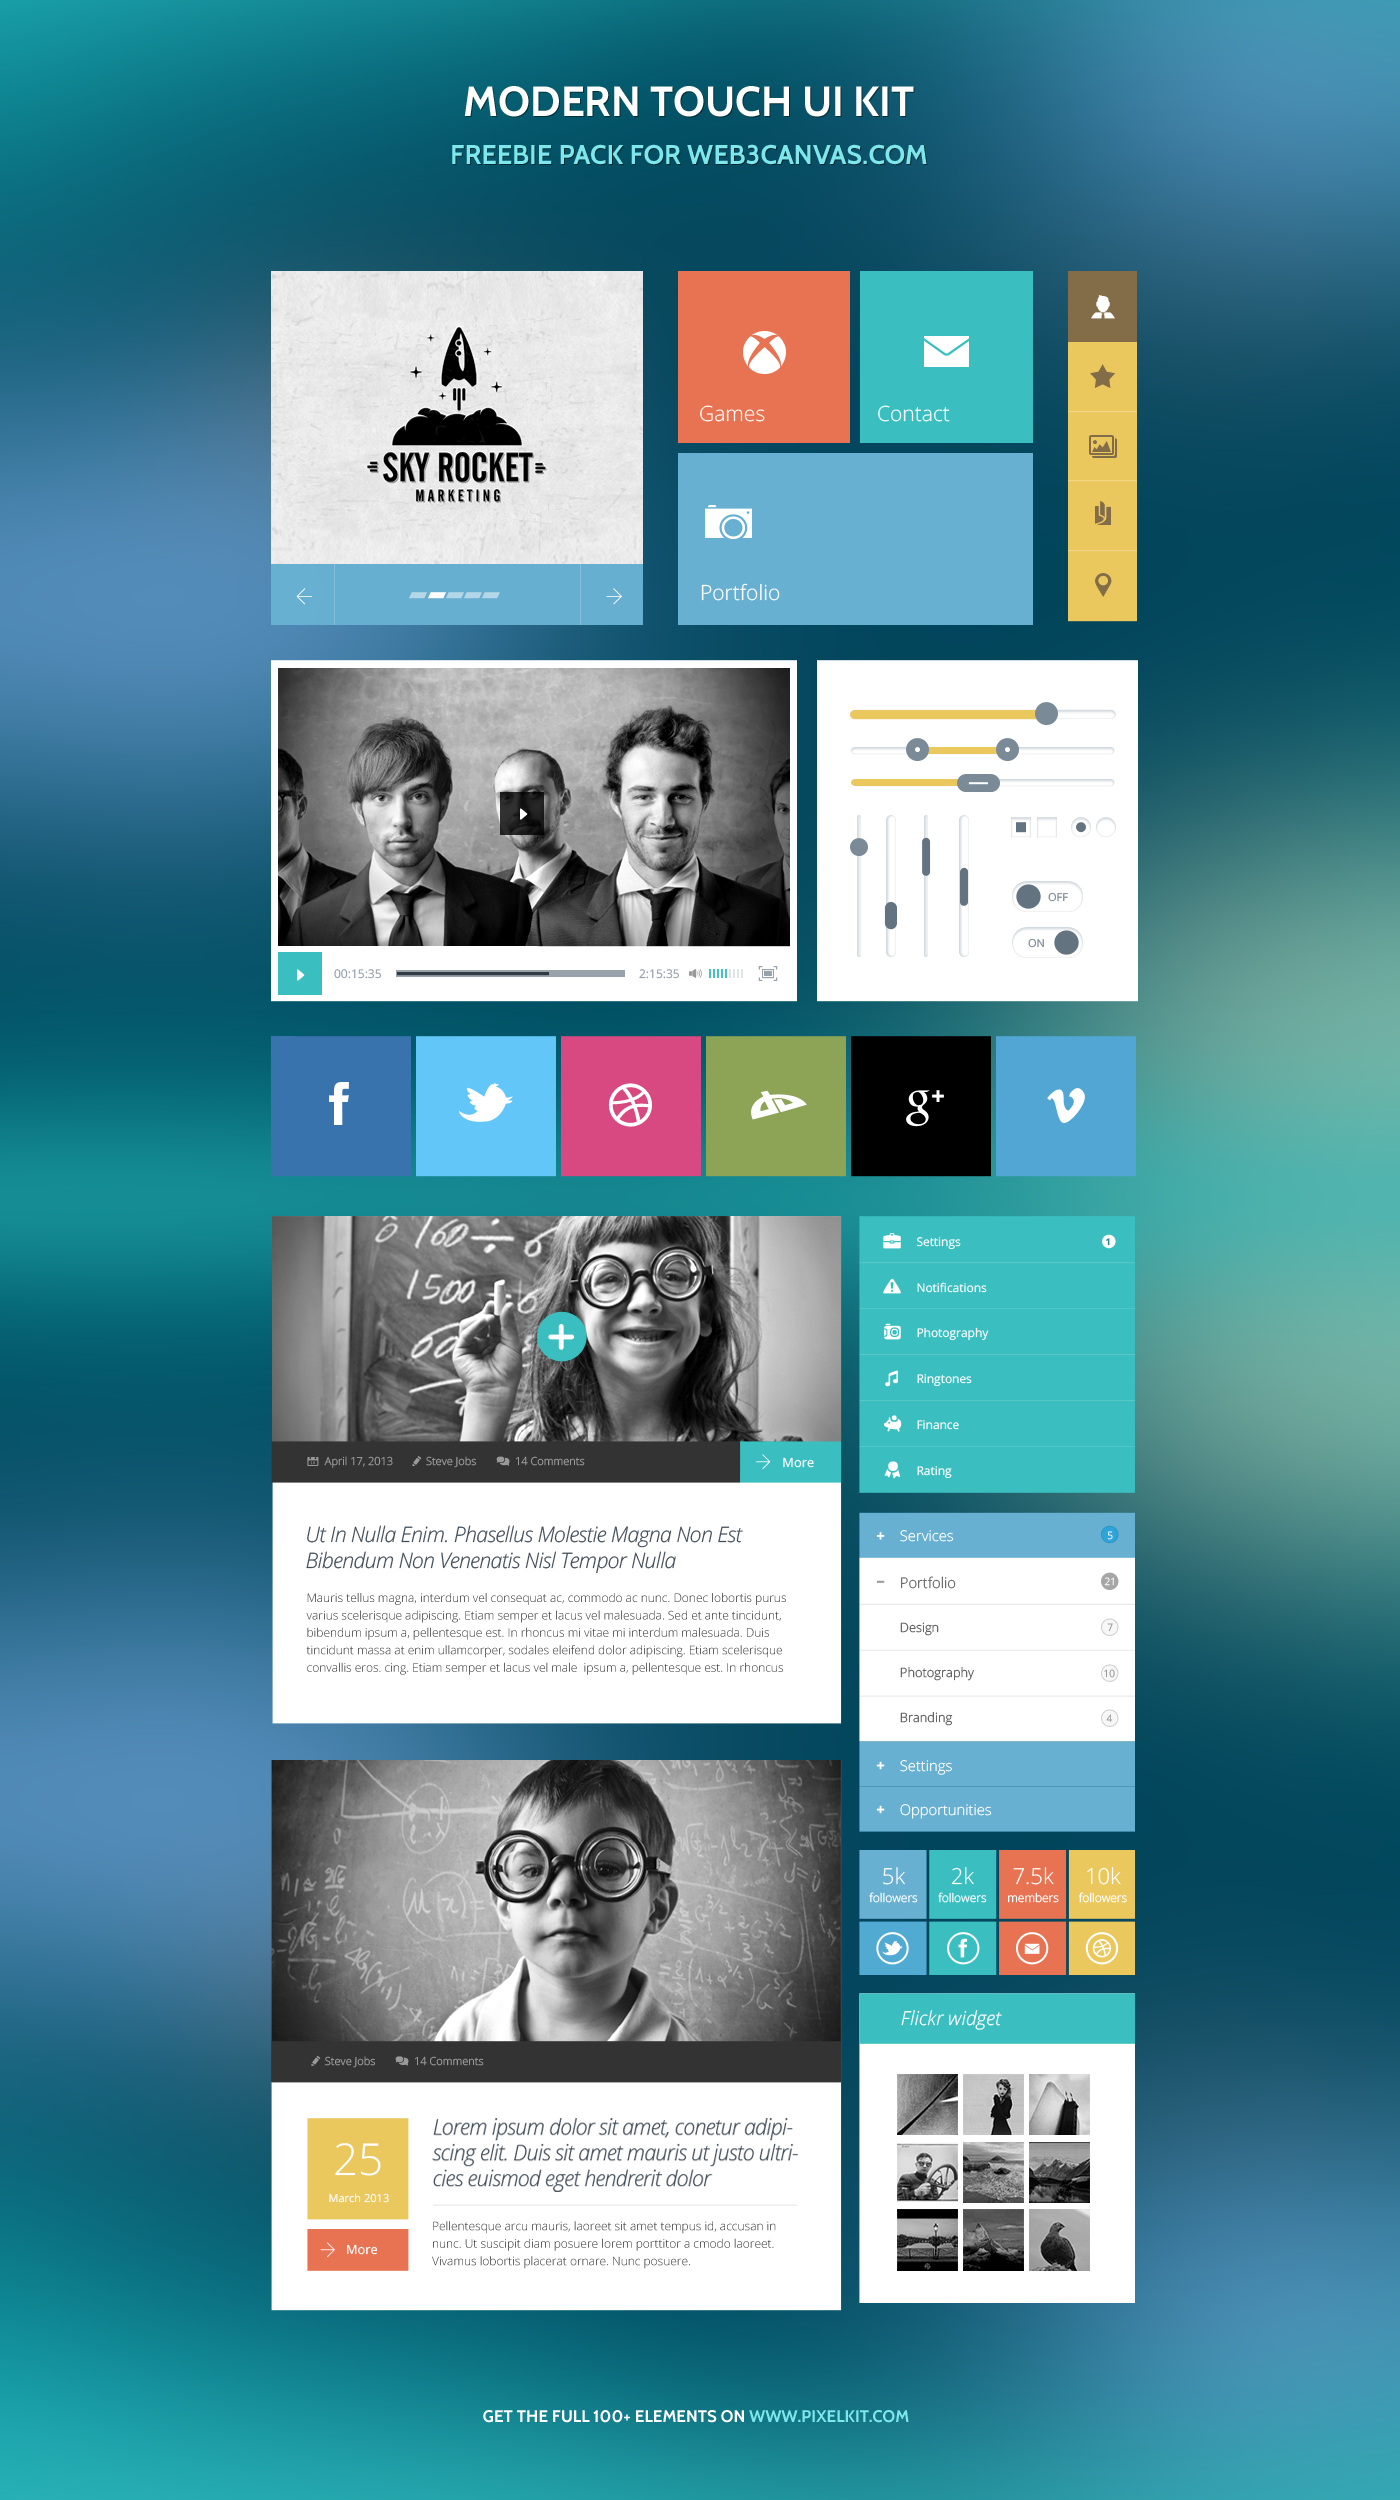 Collection of color palettes photoshop for ui designs web3canvas - Flat Ui Kit Modern Touch Psd